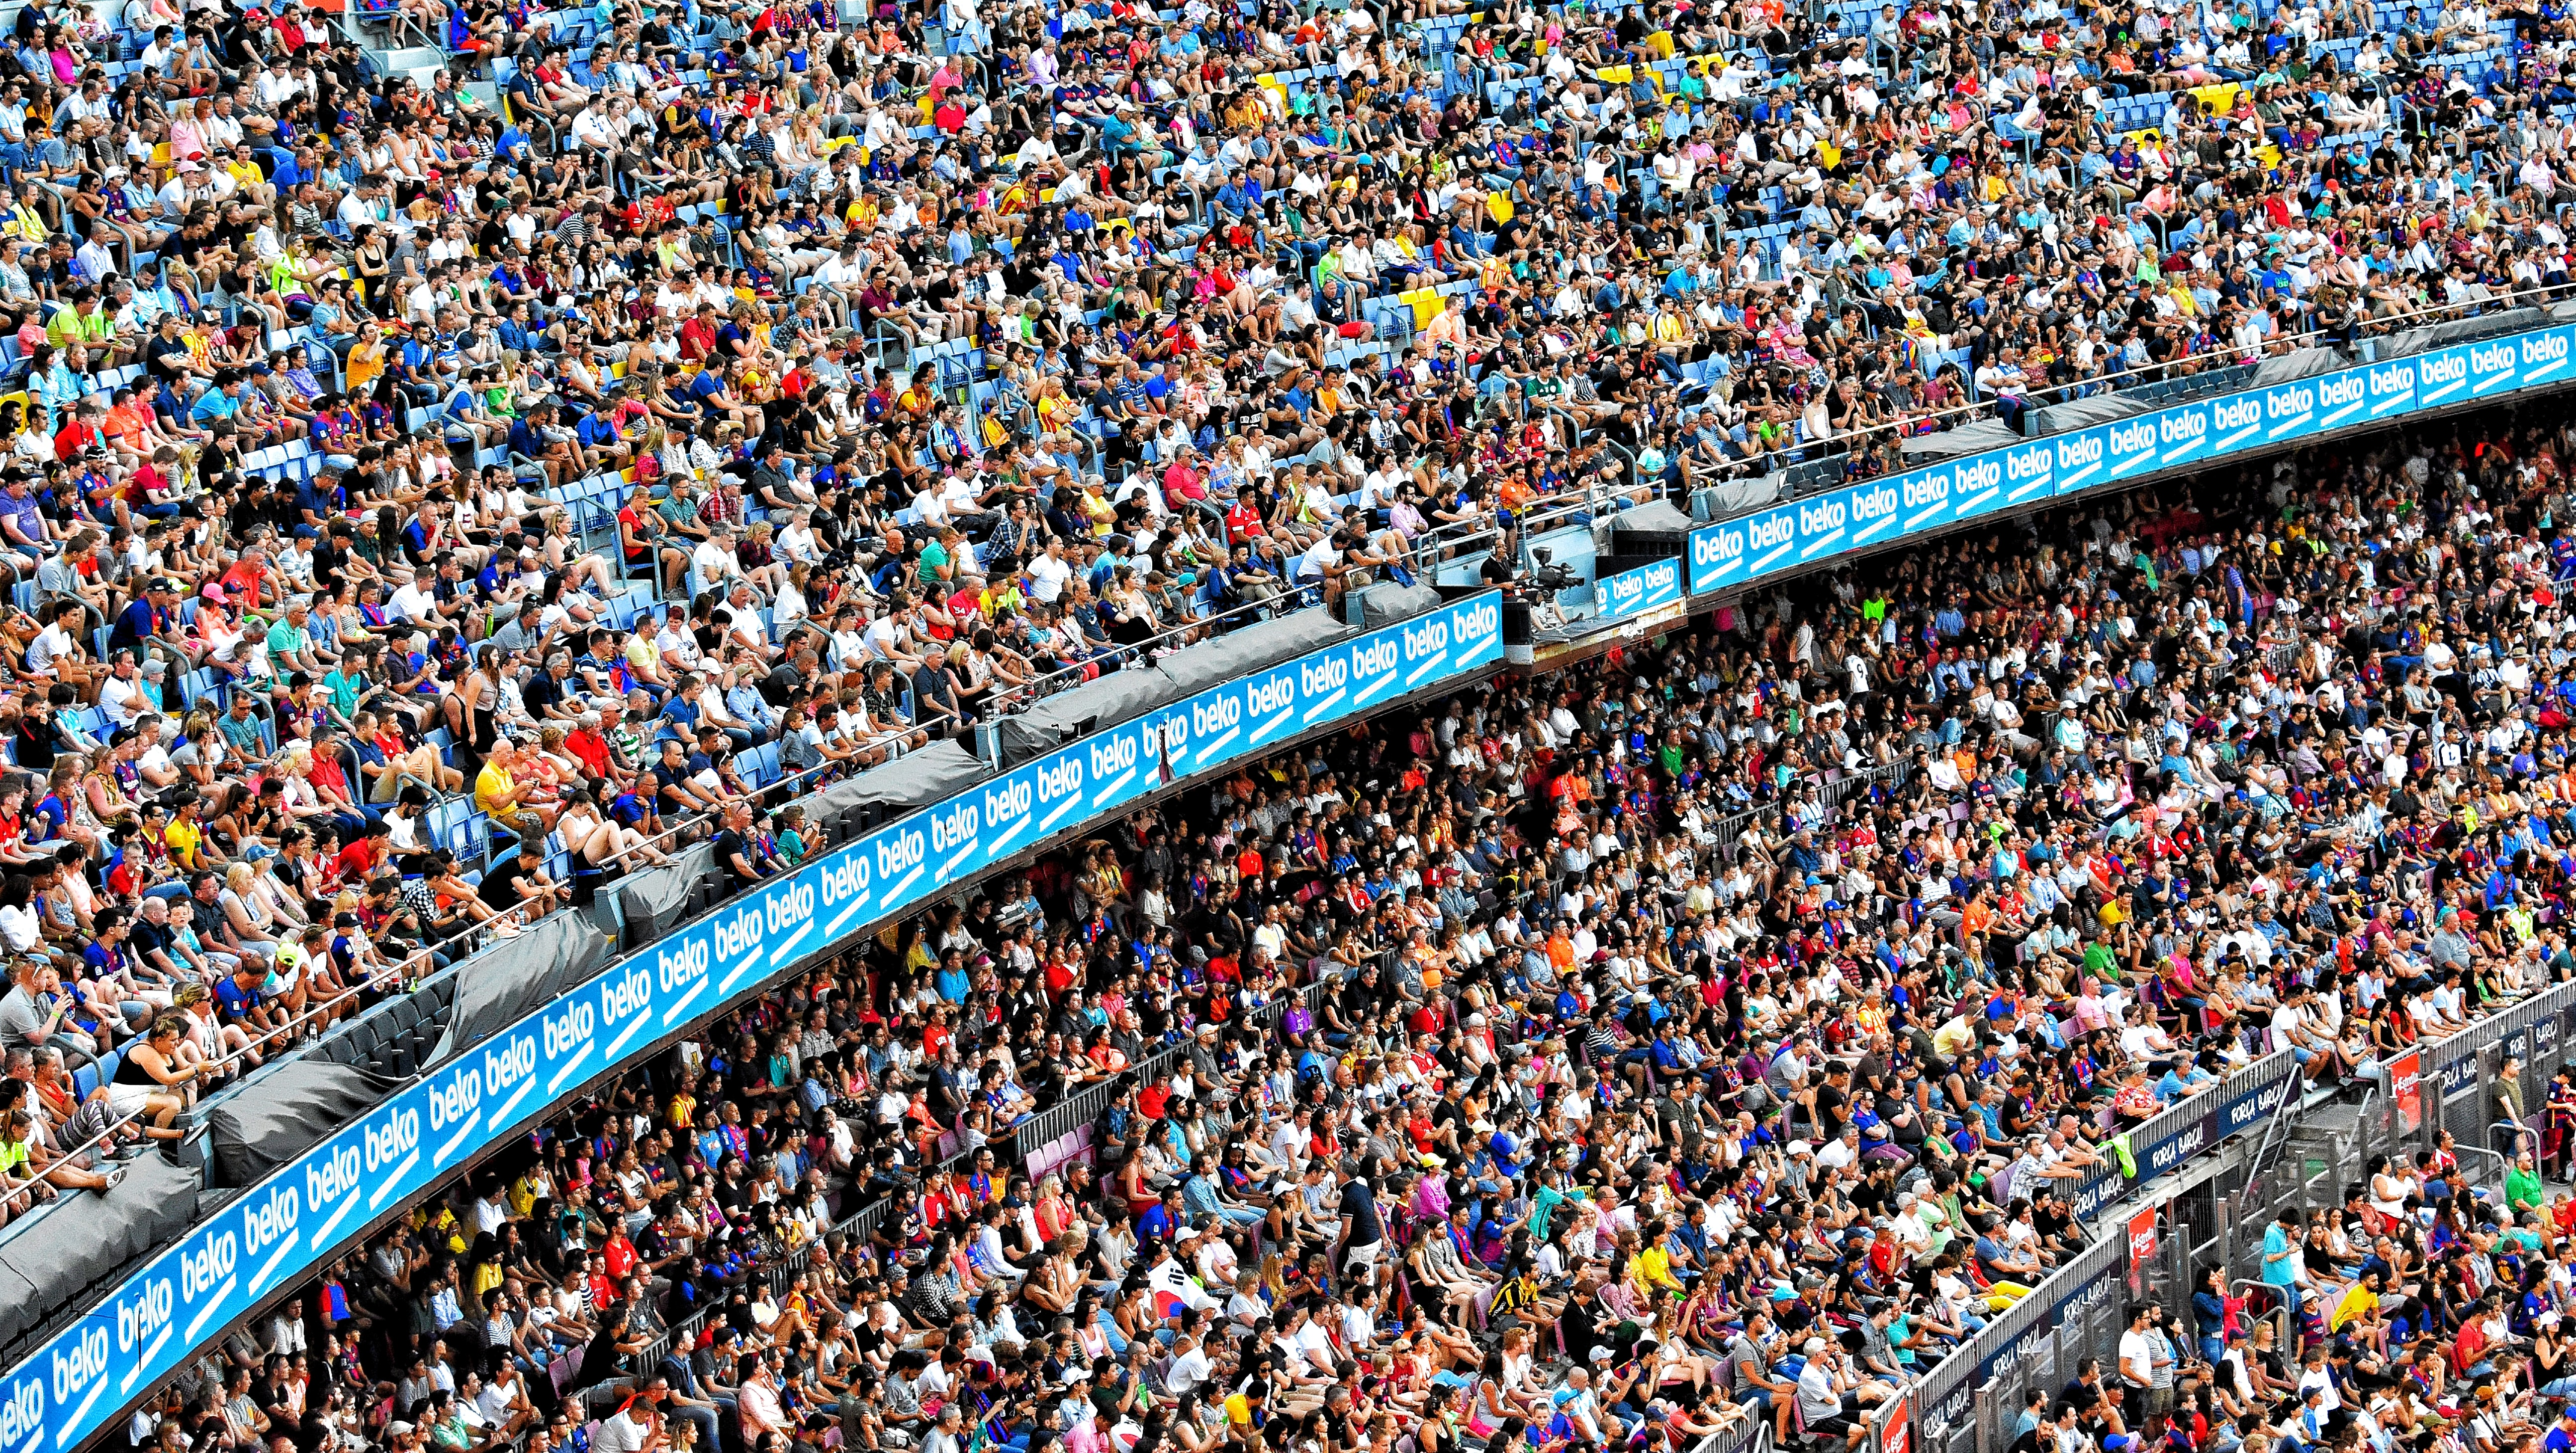 Aerial view of a crowd in a stadium during a match cheering